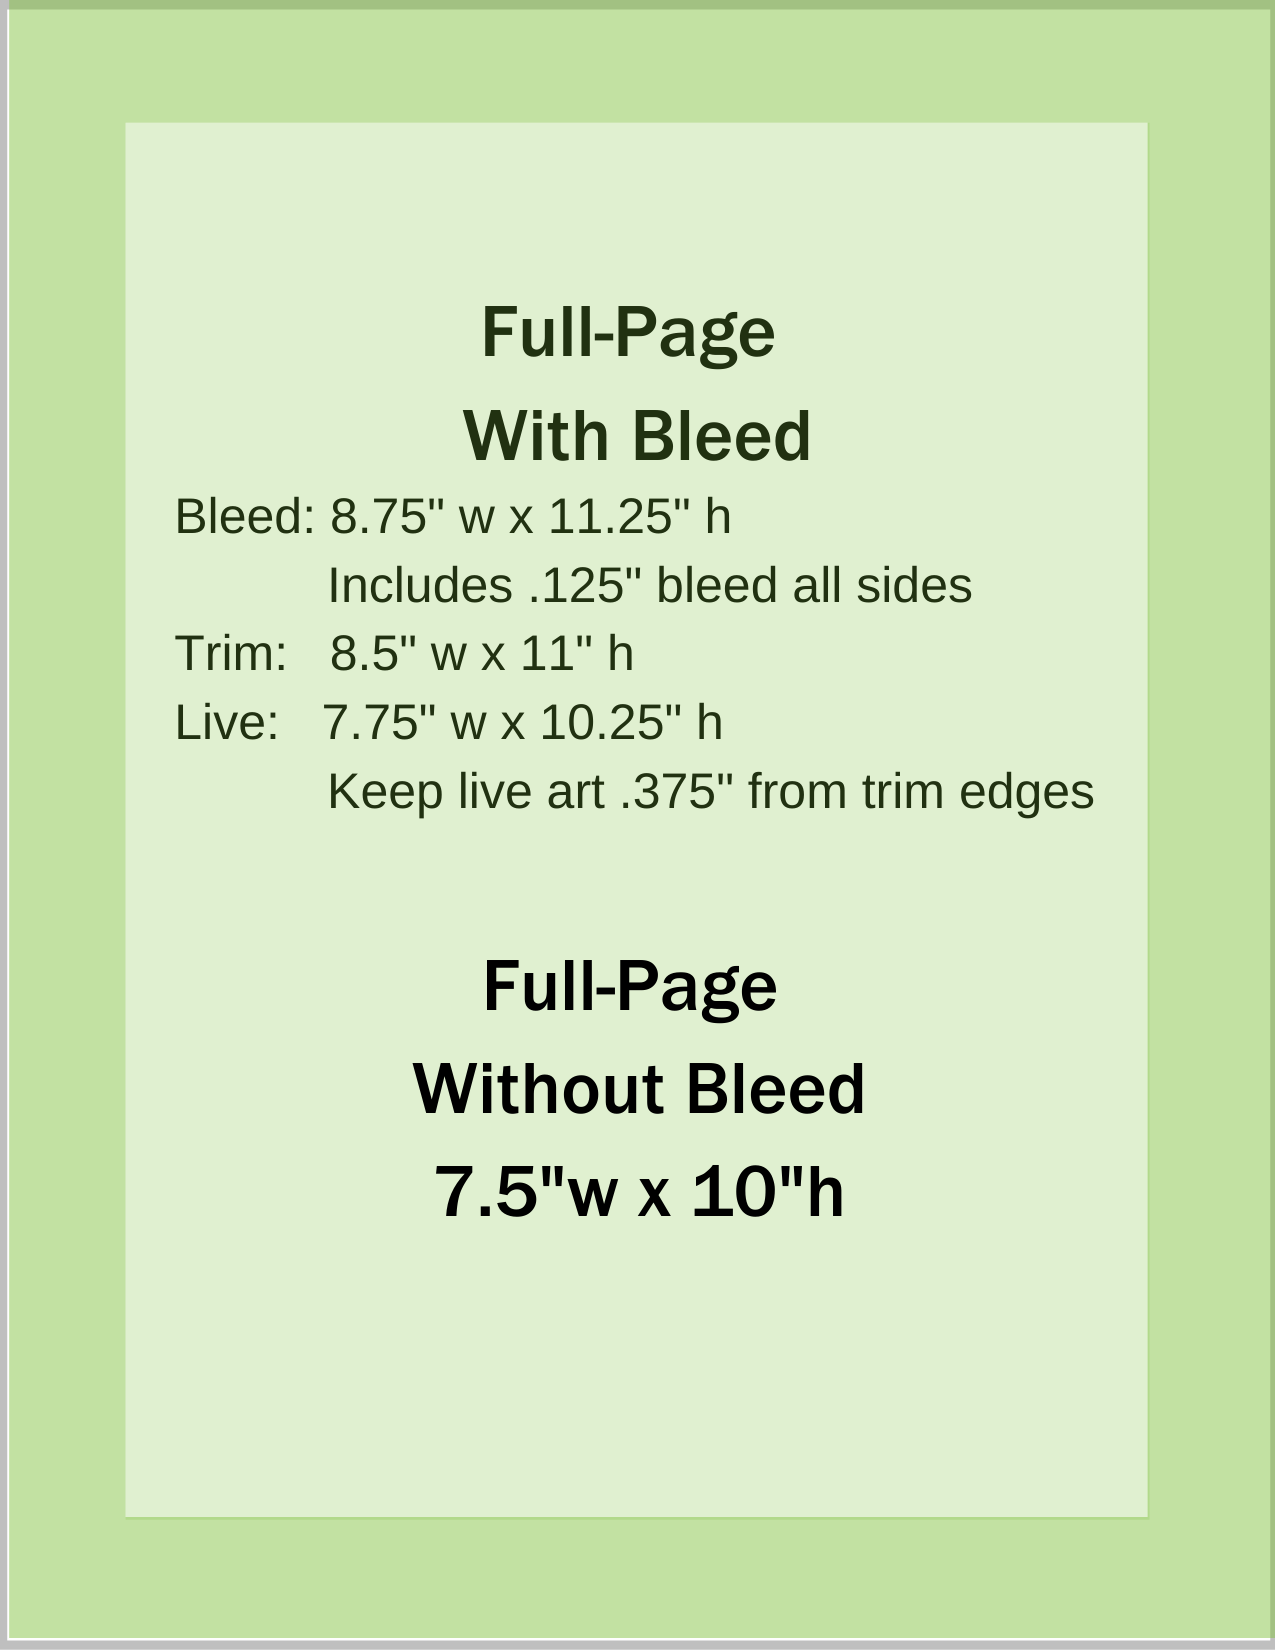 Full-Page Bleed, No Bleed